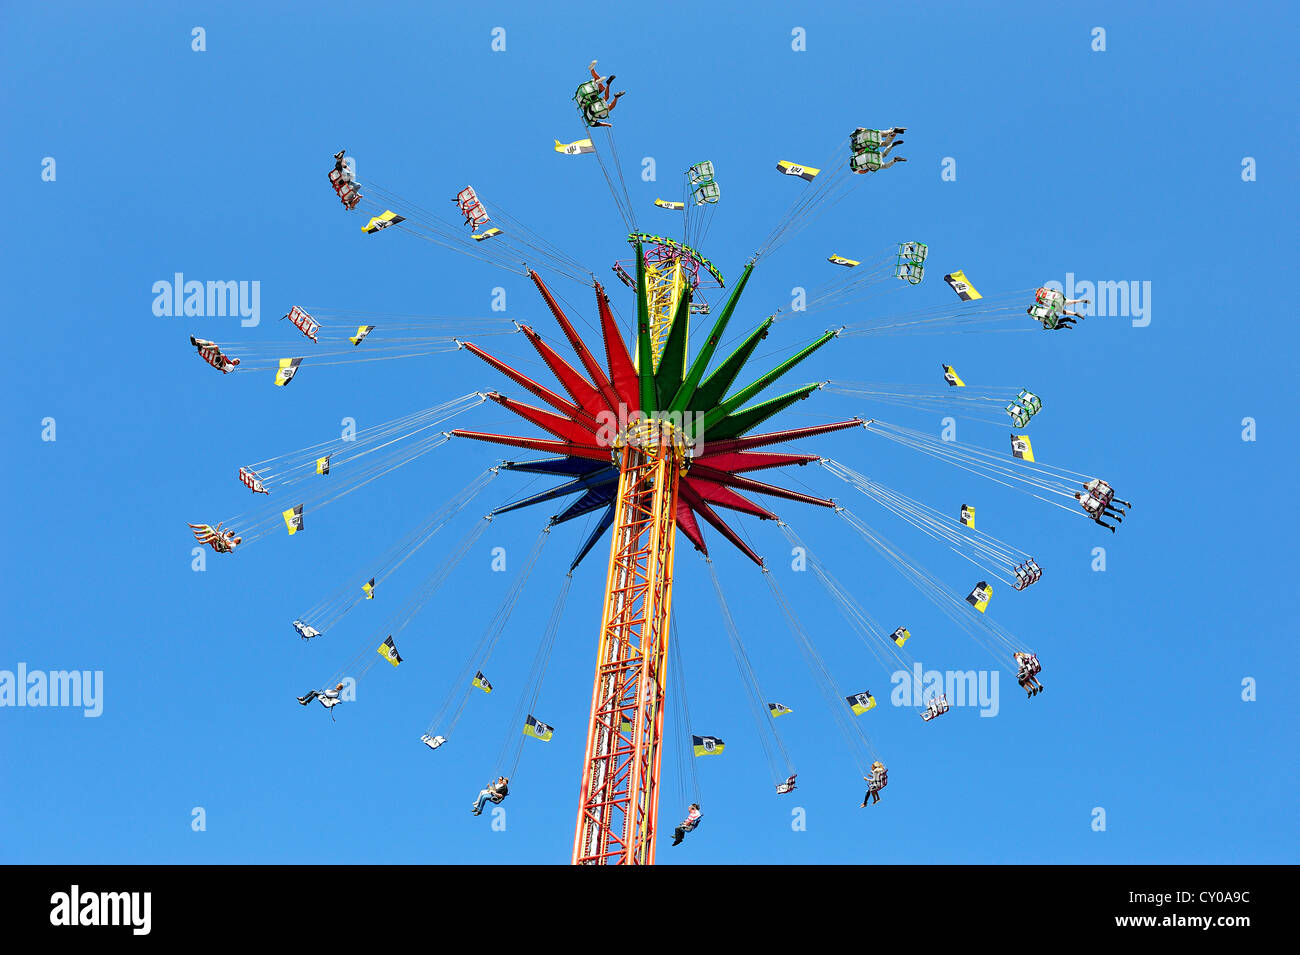 Star Flyer The World S Largest Transportable Chairoplane Or